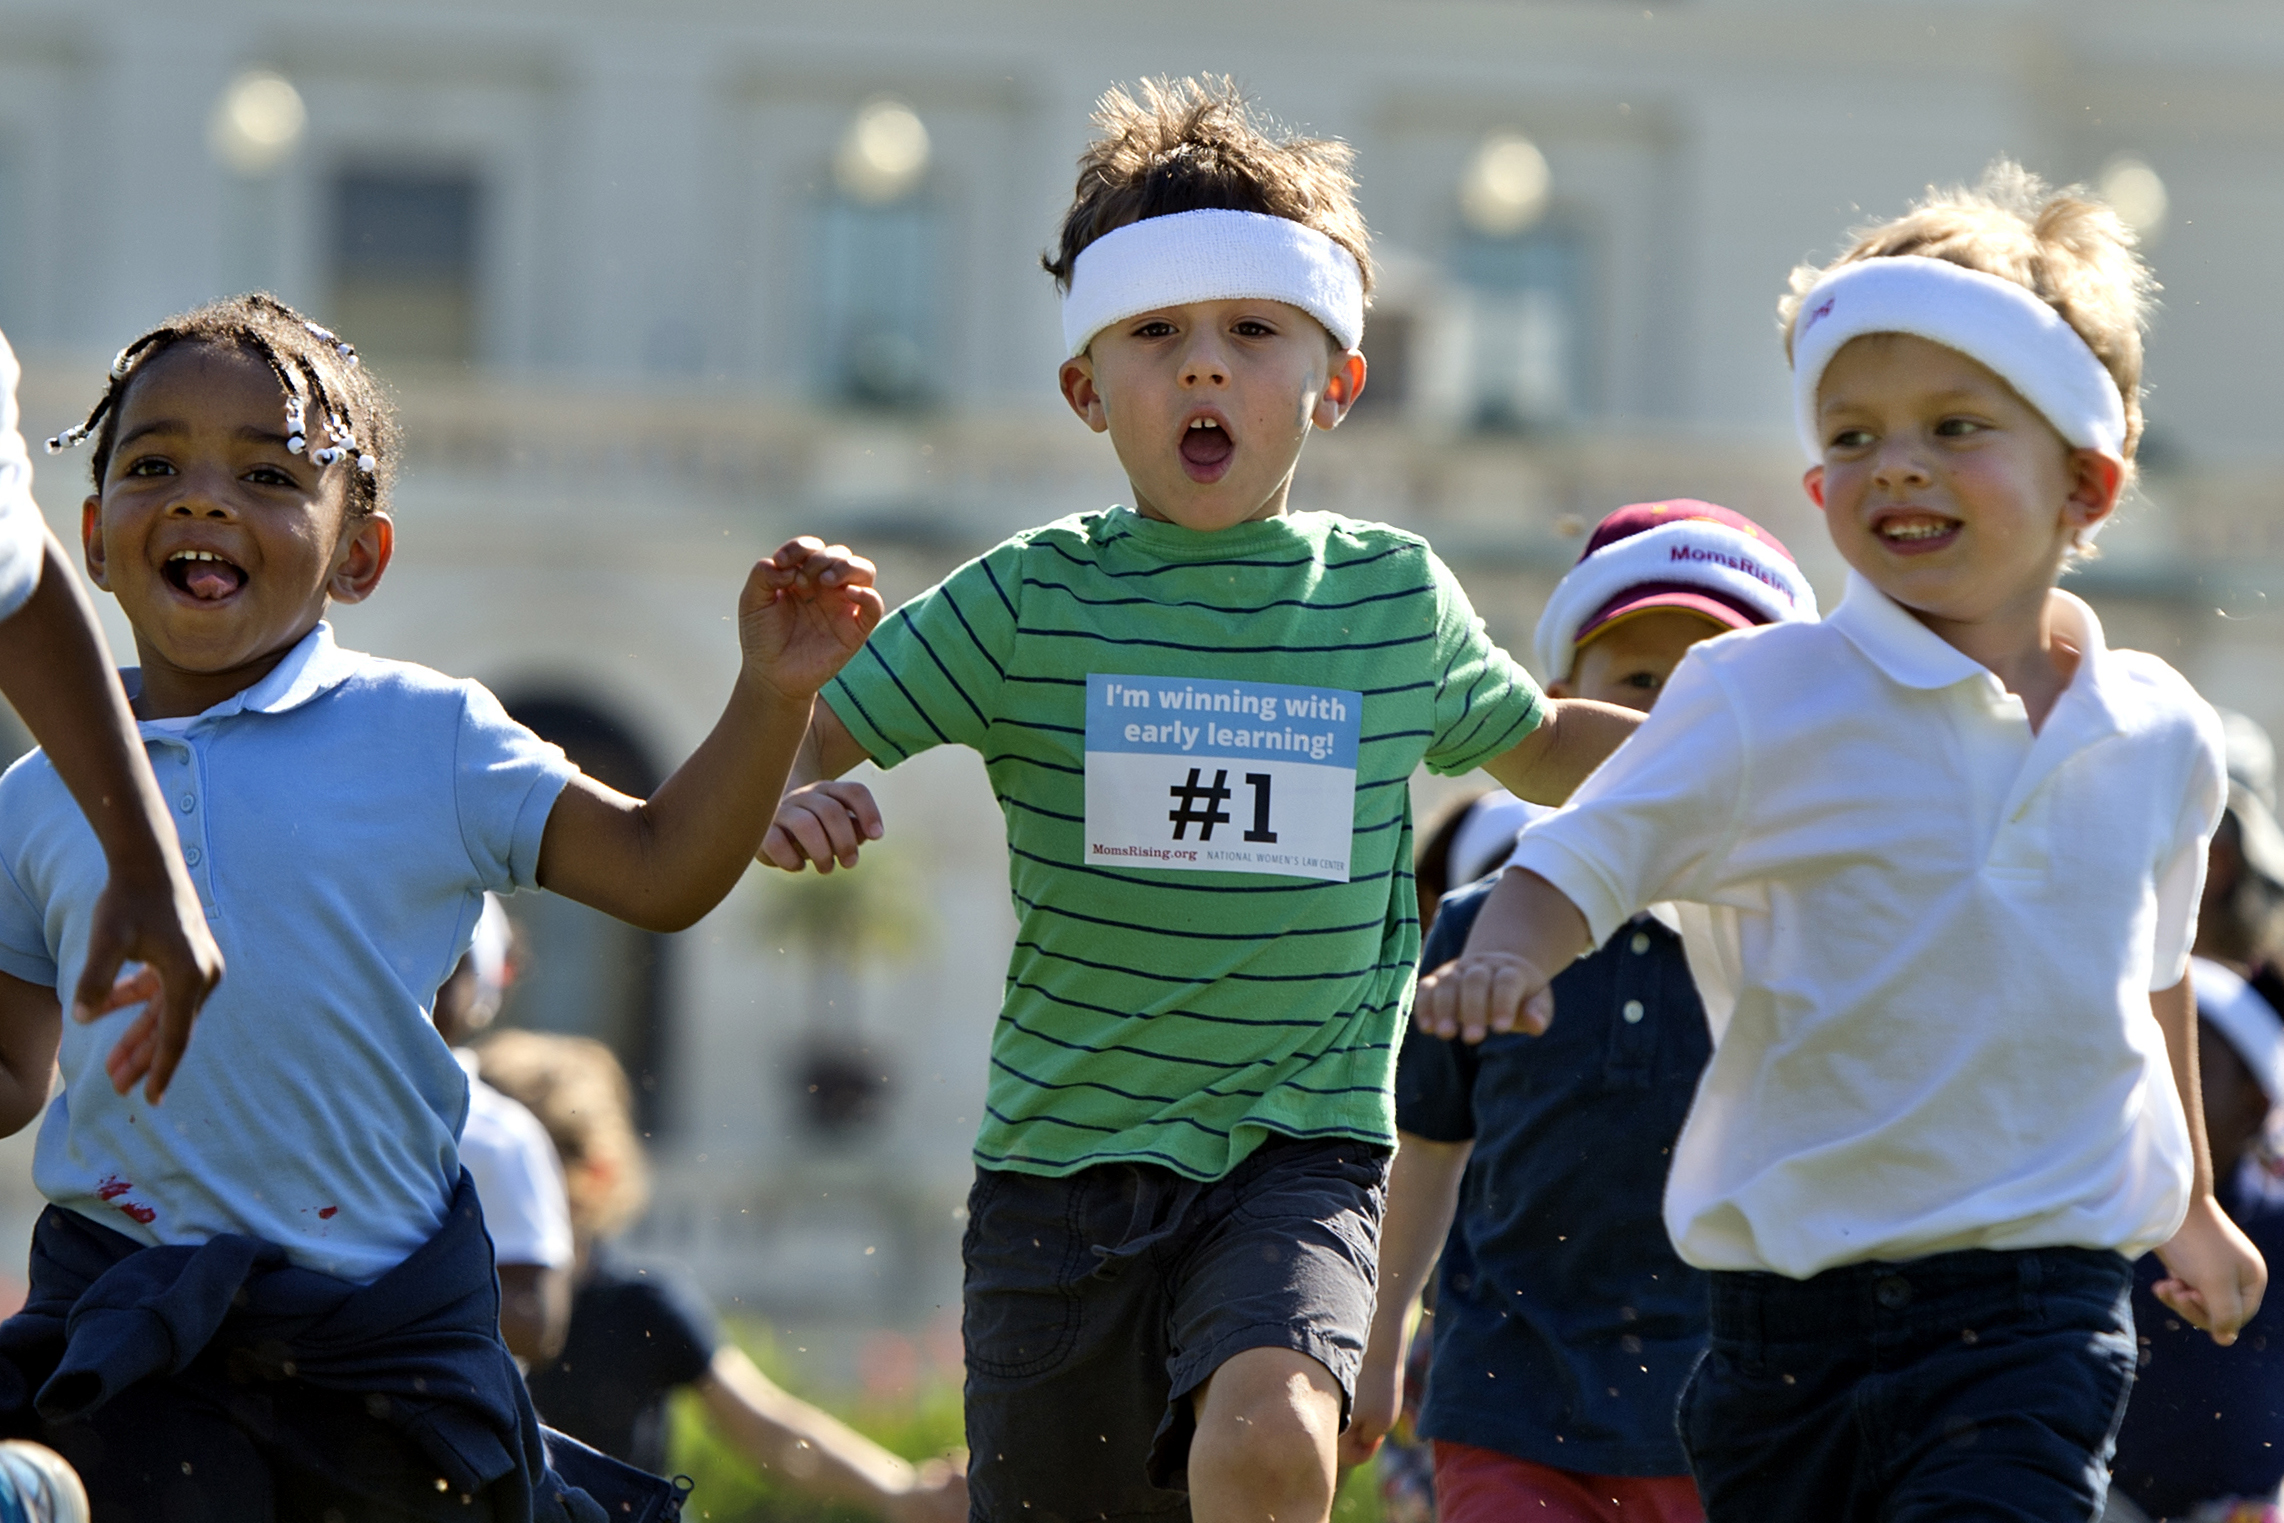 Children run a relay race during an event sponsored by co-hosted by MomsRising and the National Women's Law Center to highlight the importance of affordable child care and early learning programs on Sept. 17, 2015.